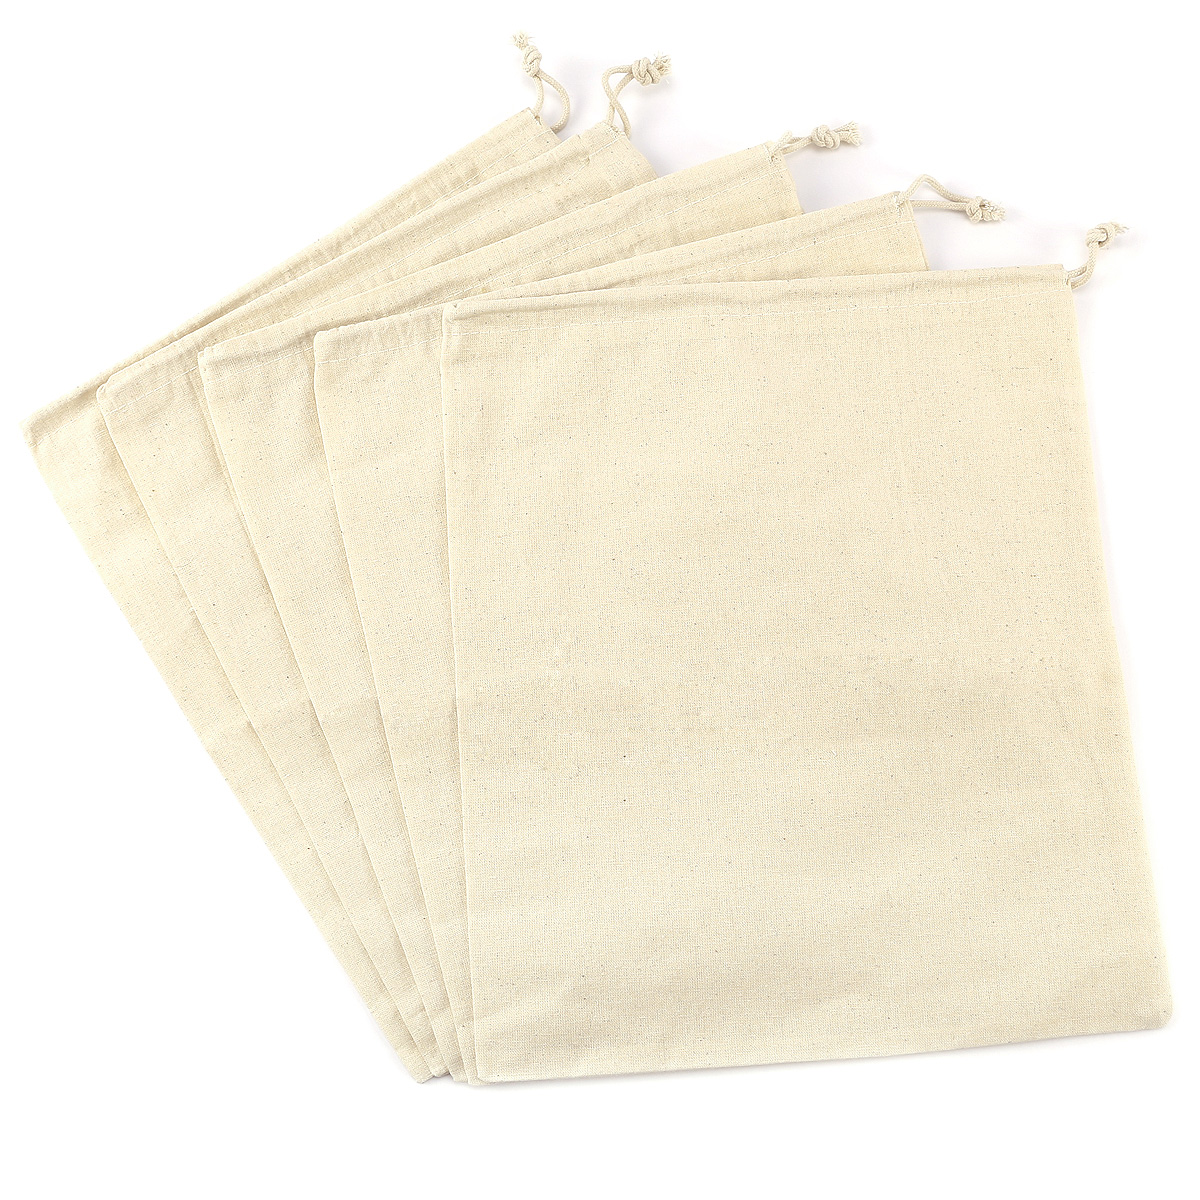 Cotton Stuff Gift Party Laundry Bags W Draw String Small